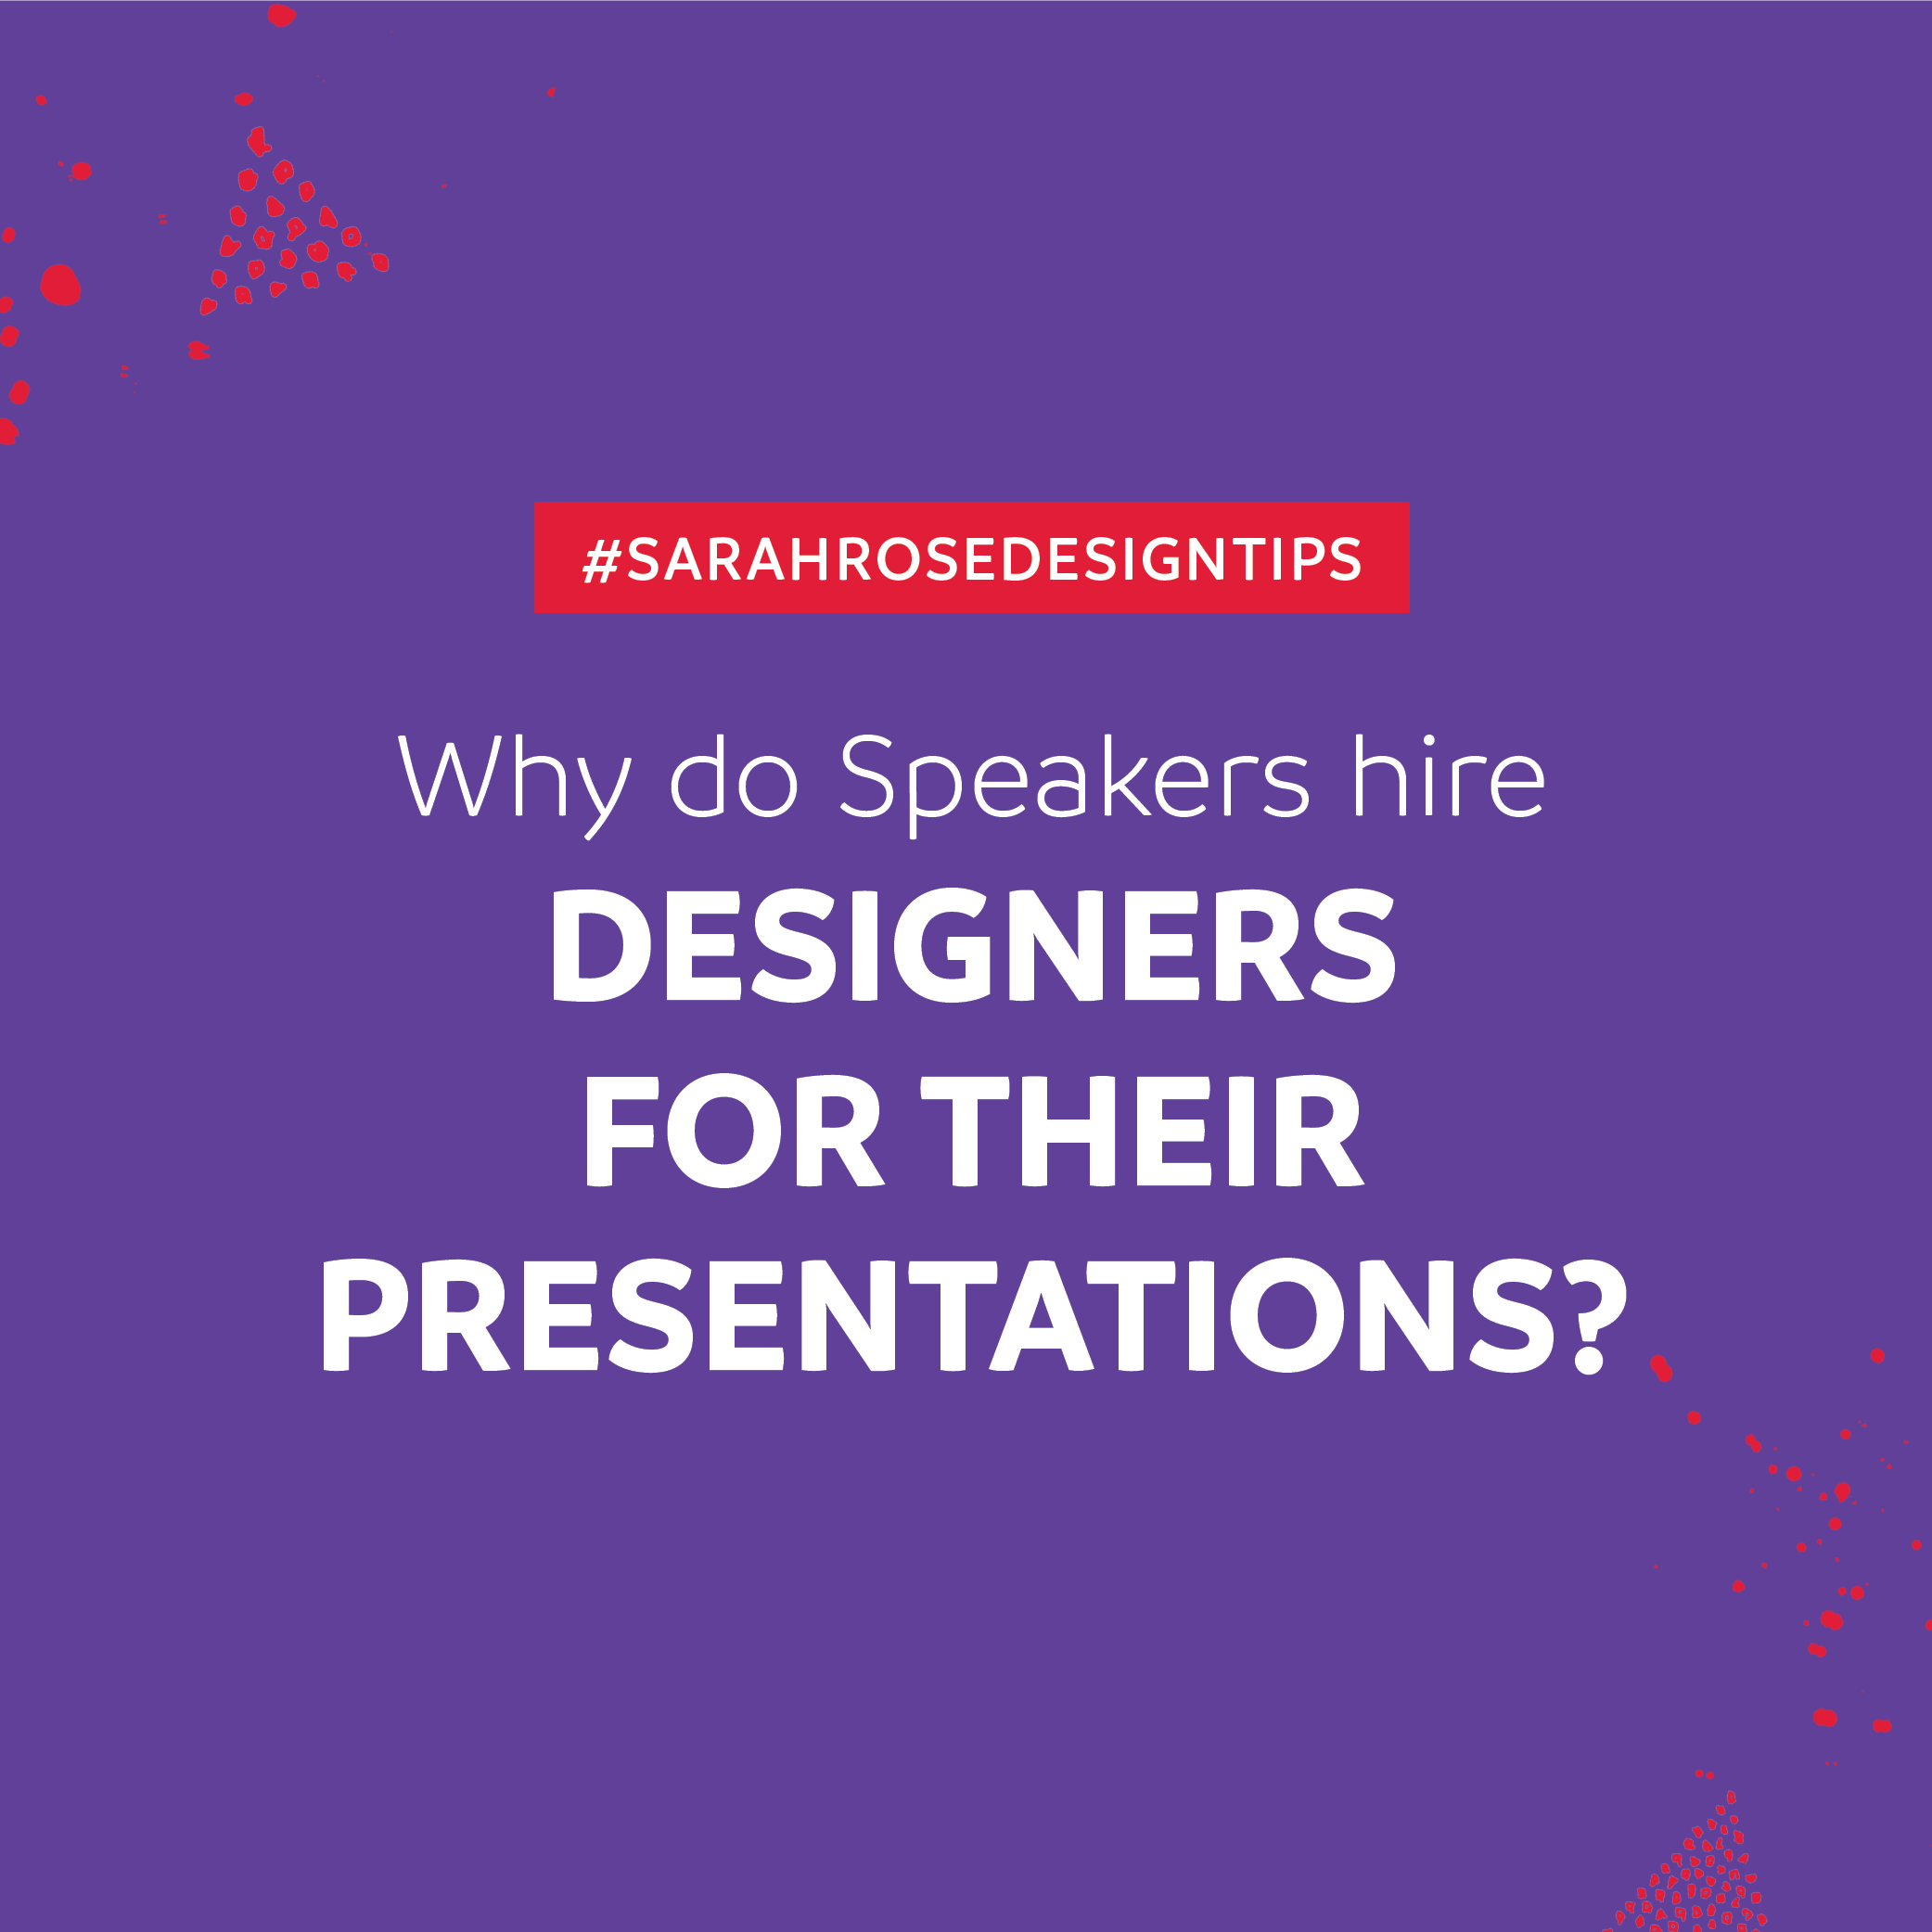 Why Do Speakers Hire Presentation Designers?